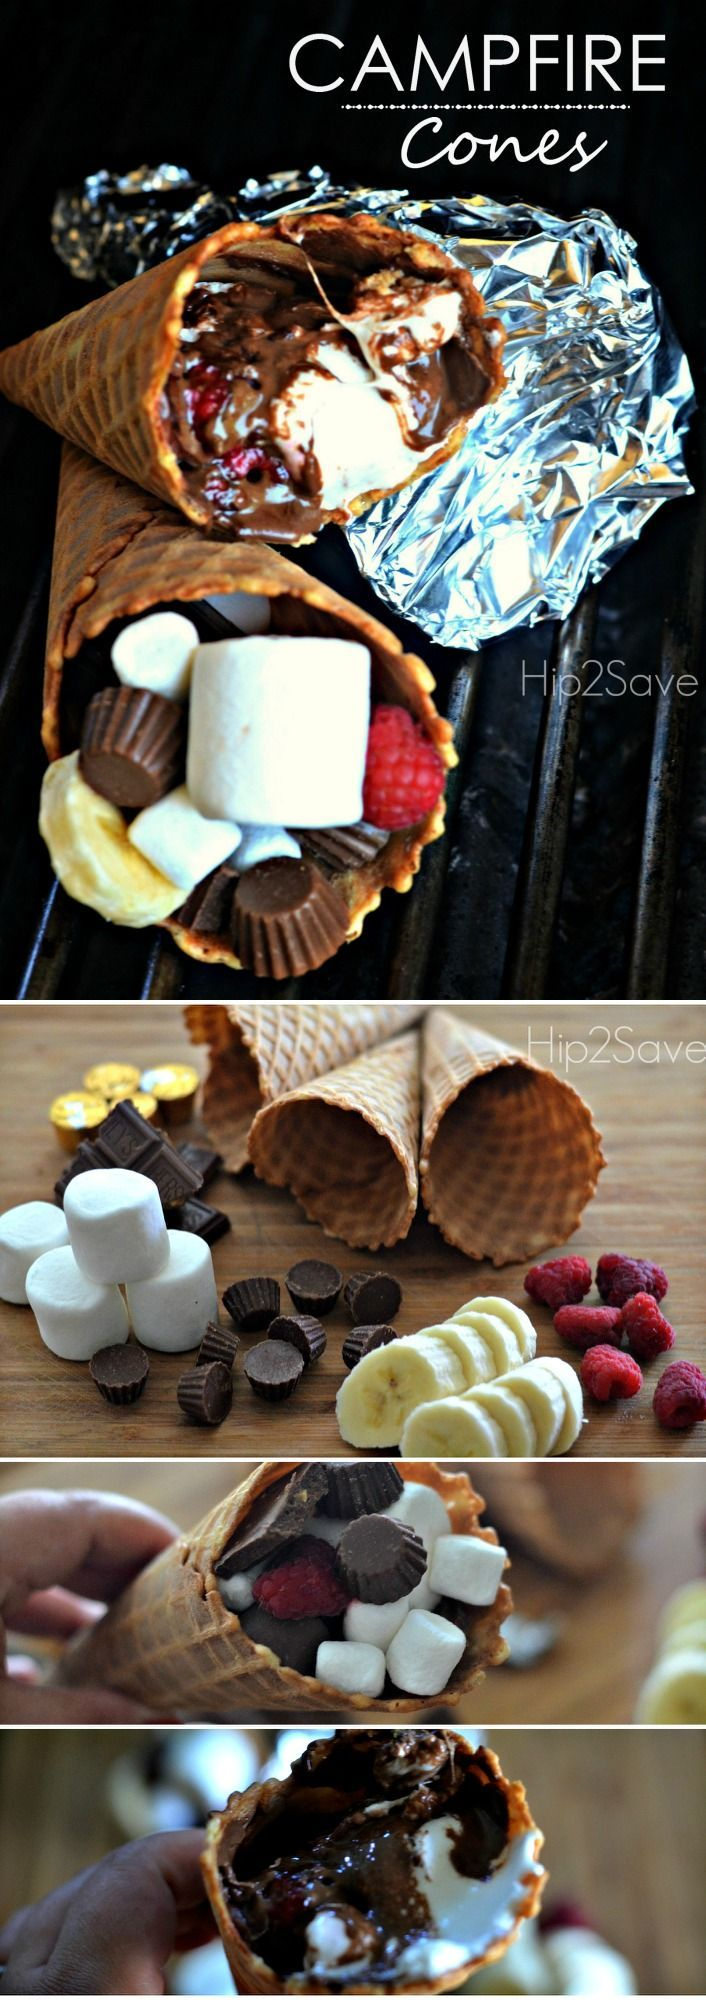 Cônes sucrés aux guimauves, bananes et chocolat (en anglais) Campfire Cones filled with marshmallows, chocholate, bananas and so much more. You'll love this treat. (Fun & Easy, Oh So Yummy Summer Dessert)